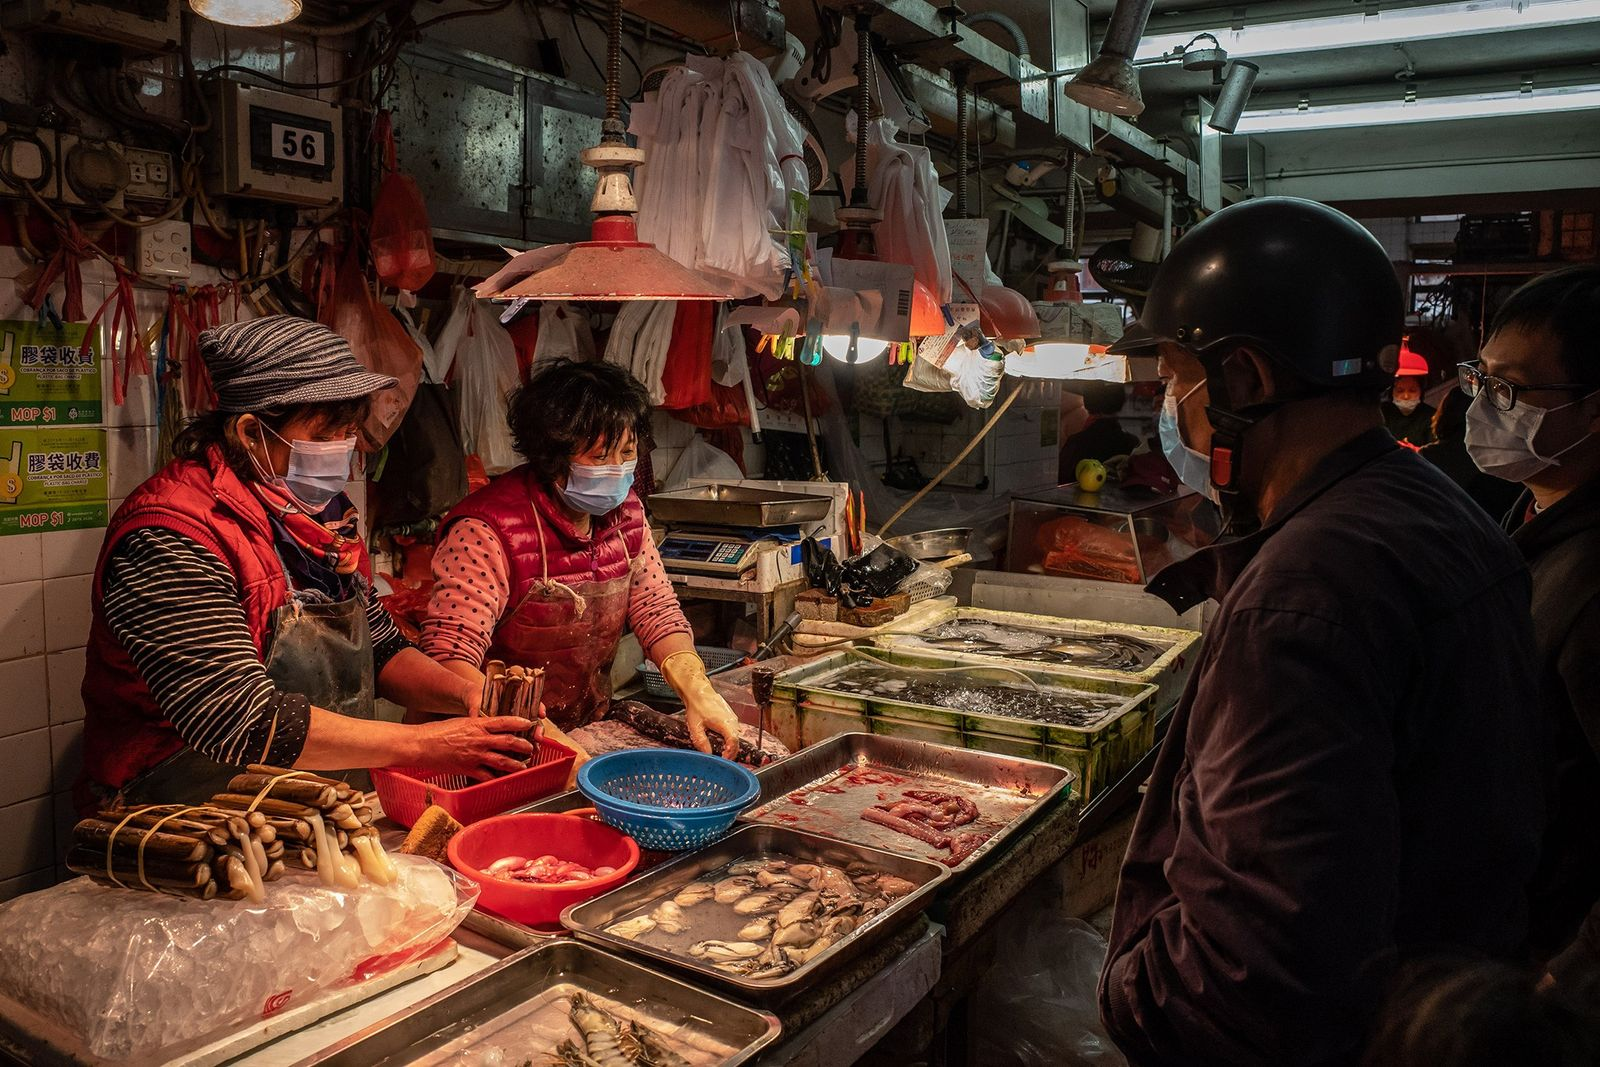 Wet markets, like this one in Macau, are found throughout Asia and sell fresh vegetables, fruit, ...